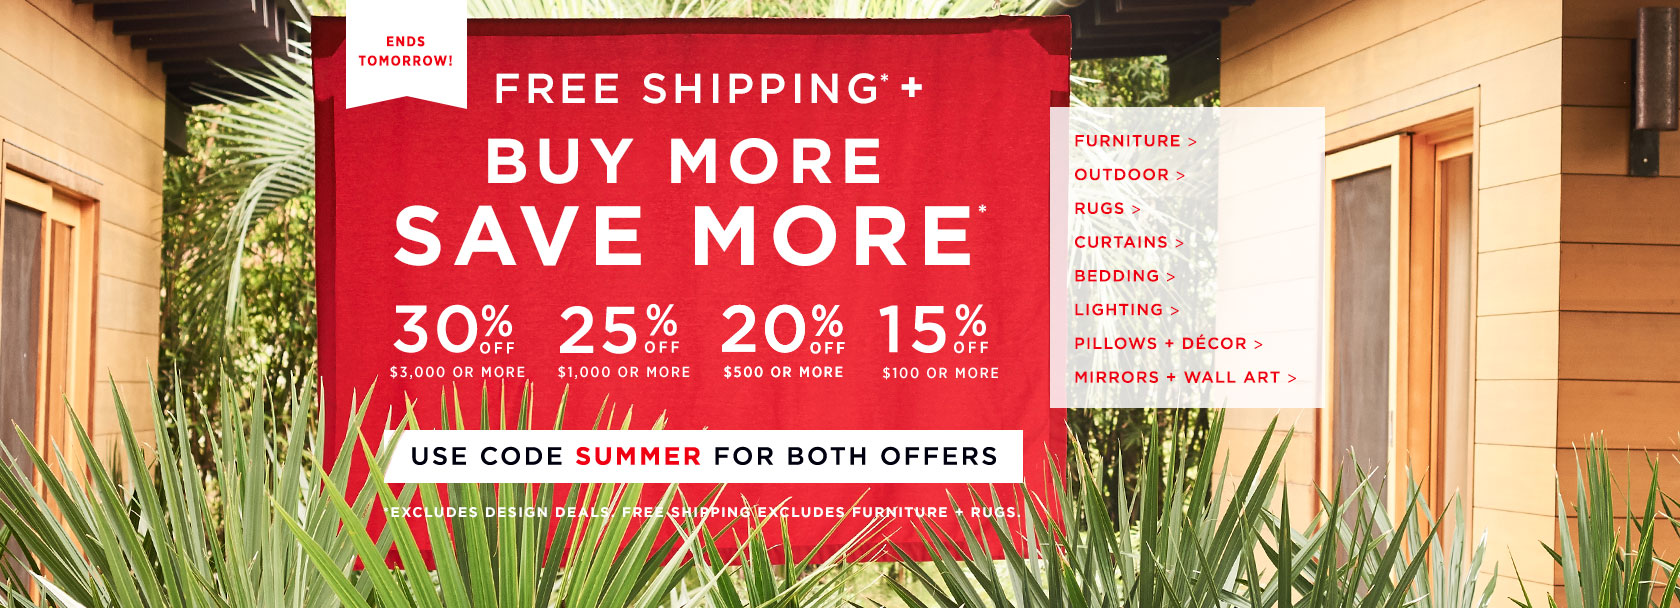 Ends Tomorrow! Buy More Save More! Up To 30% Off + Free Shipping. Use Code SUMMER for both offers